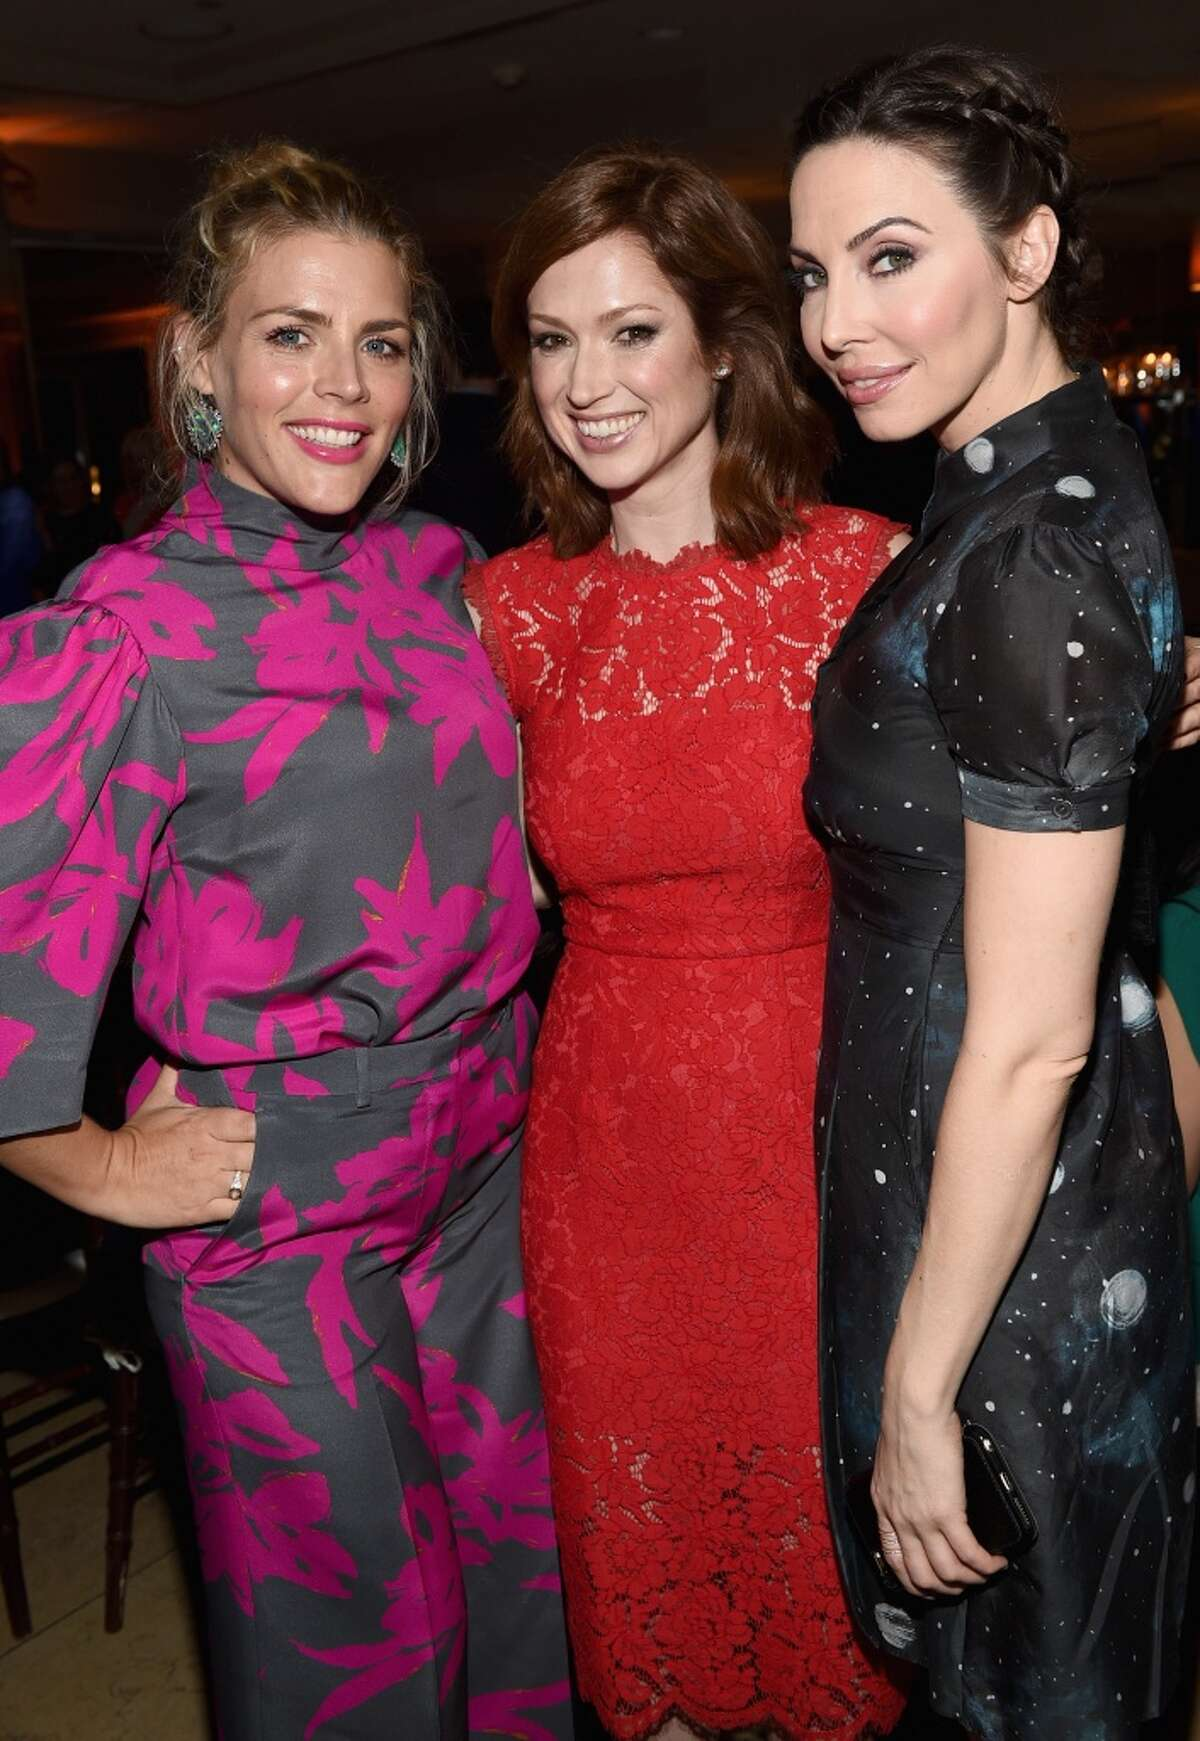 Actresses Busy Philipps, Ellie Kemper and Whitney Cummings attend ELLE's Annual Women in Television Celebration on January 13, 2015 at Sunset Tower in West Hollywood, California. Tomlinson was a finalist on season 9 of NBC's